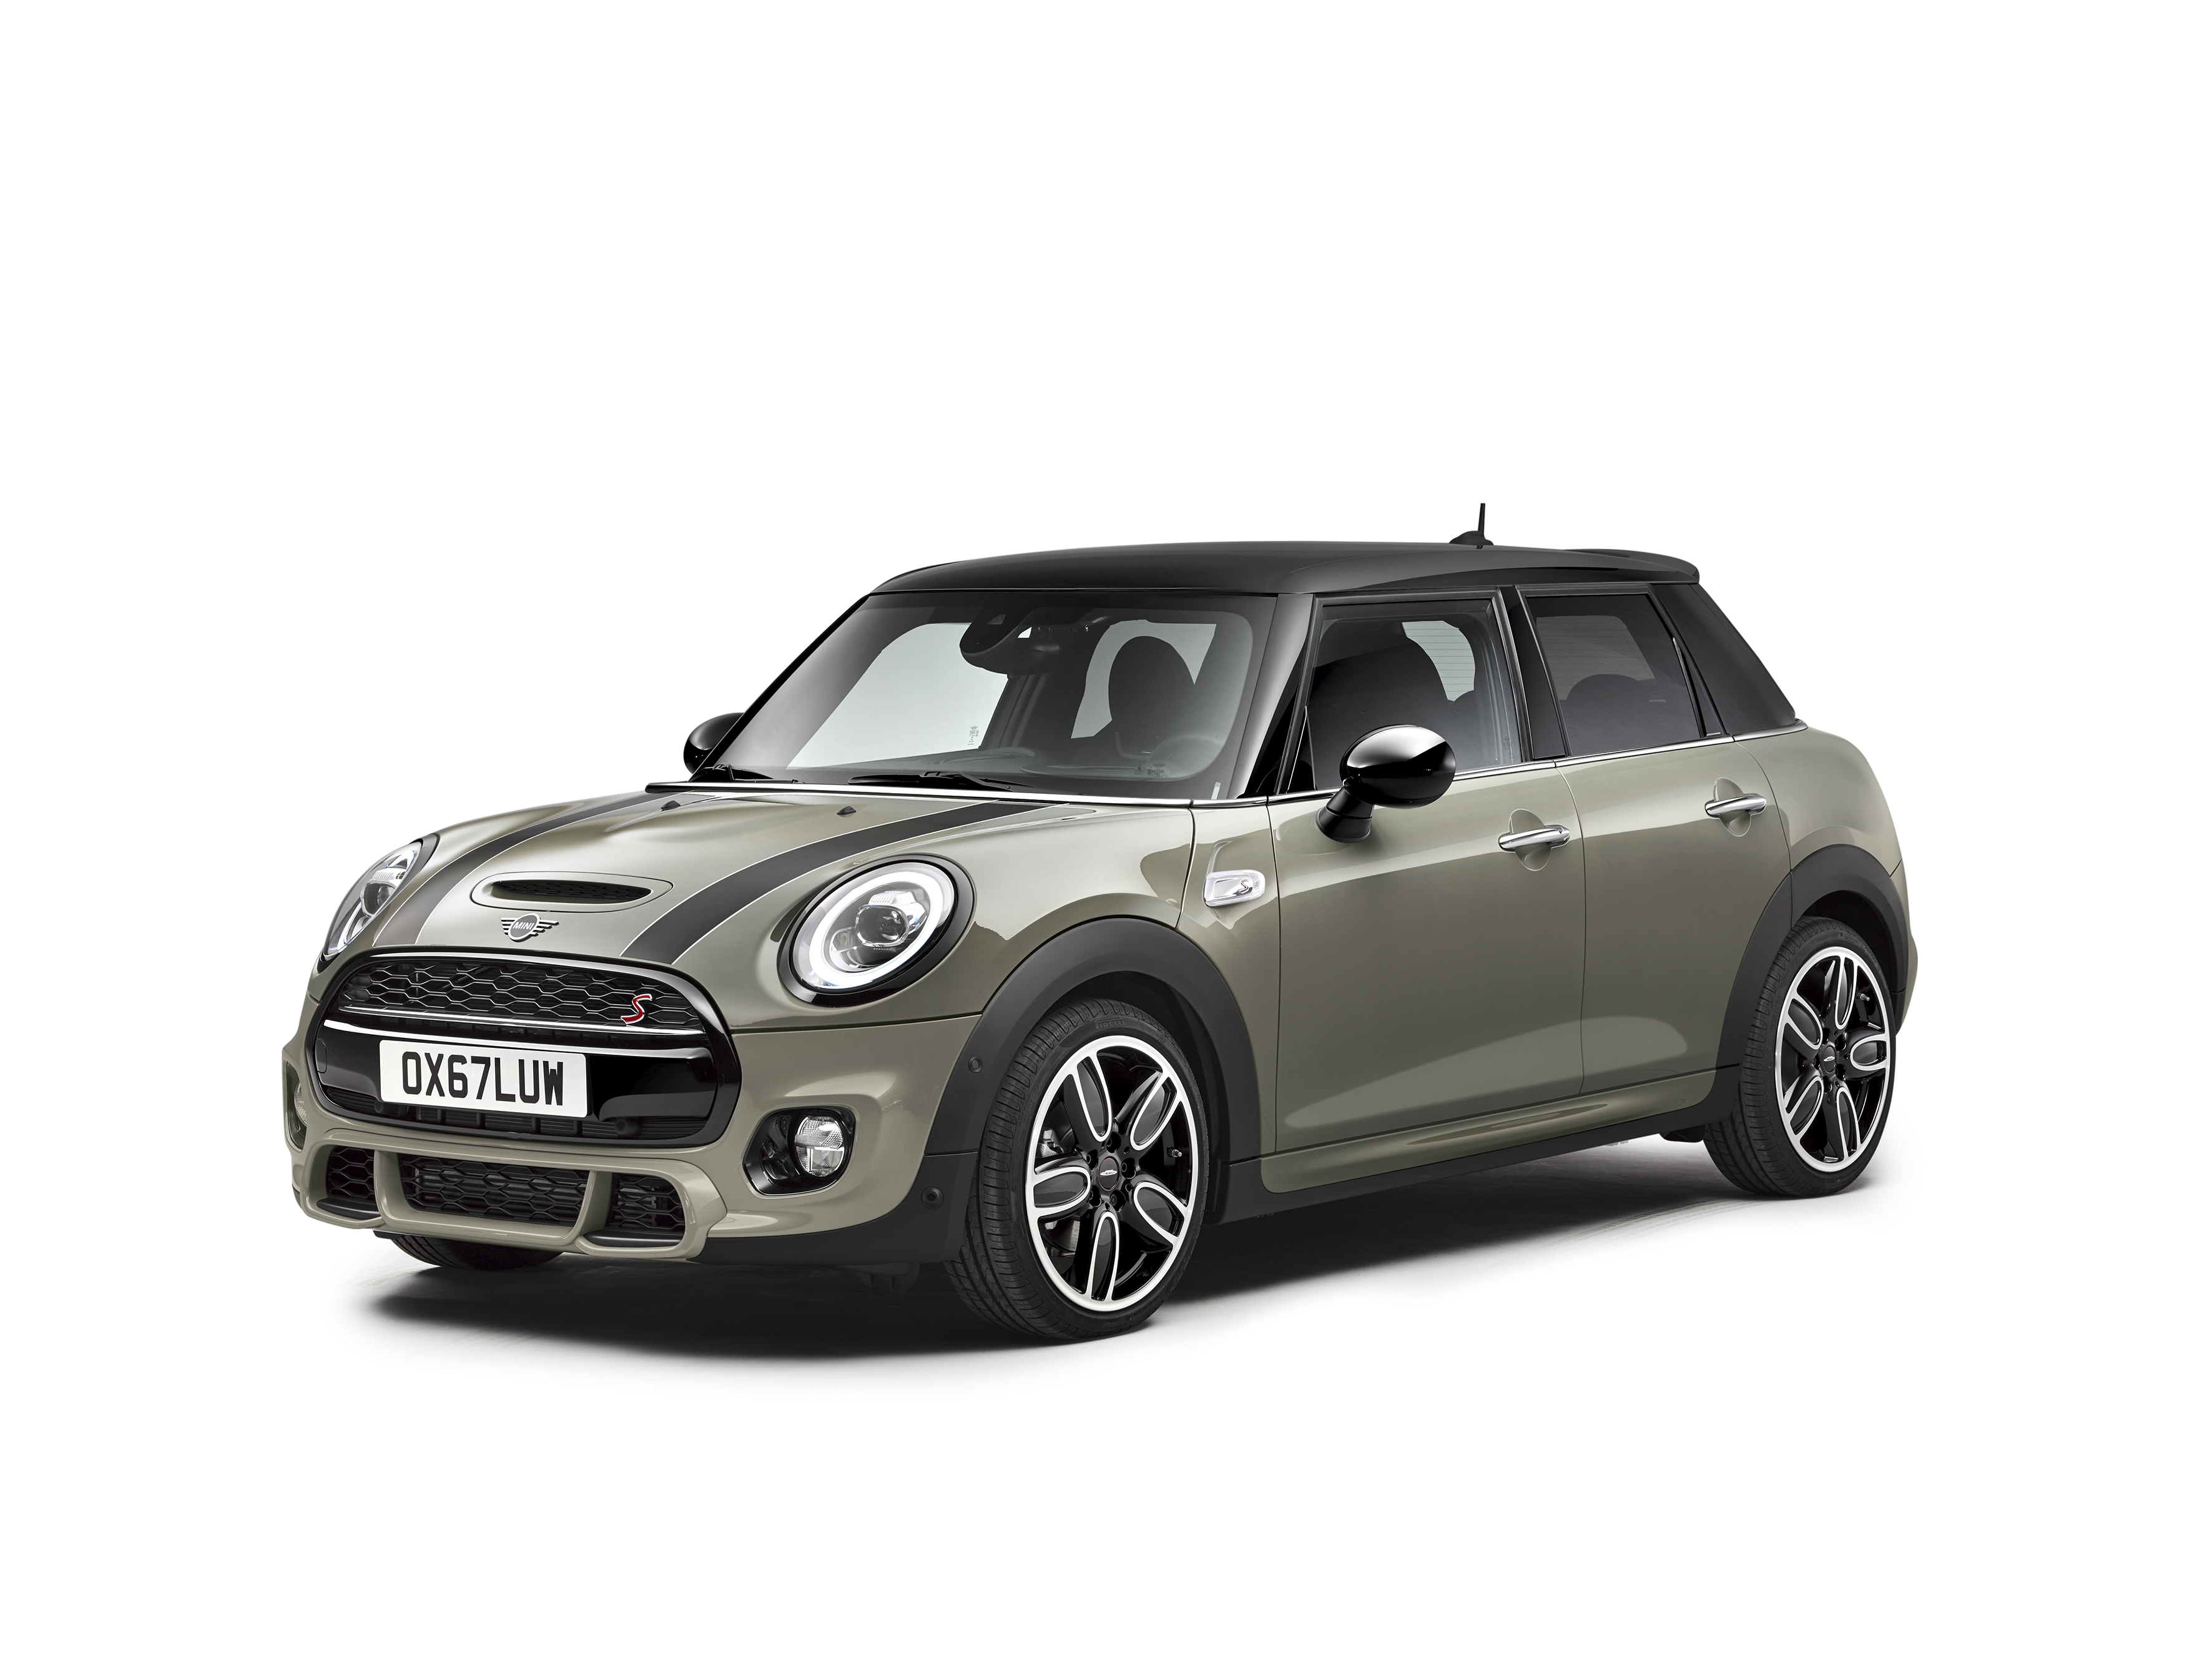 Mini F56 Facelift >> MINI F56 LCI Facelift 2018 - Hatch - PPM 03/2018 für F55 F56 F57 - Diskussion - Seite 2 ...